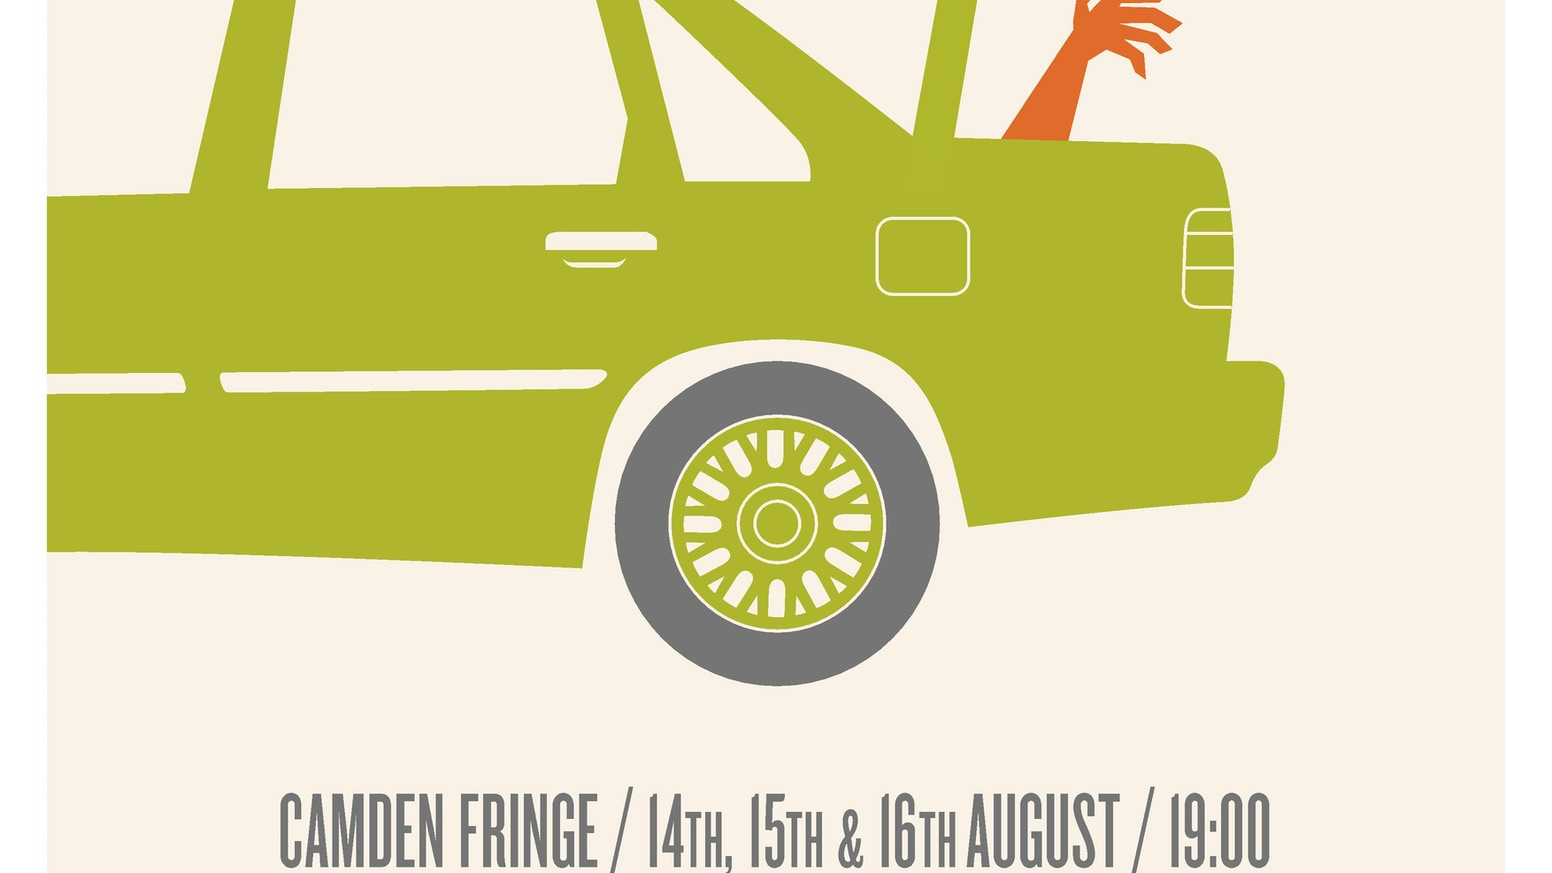 The Not So Curious Incident of the Man in the Green Volvo by Knee ...